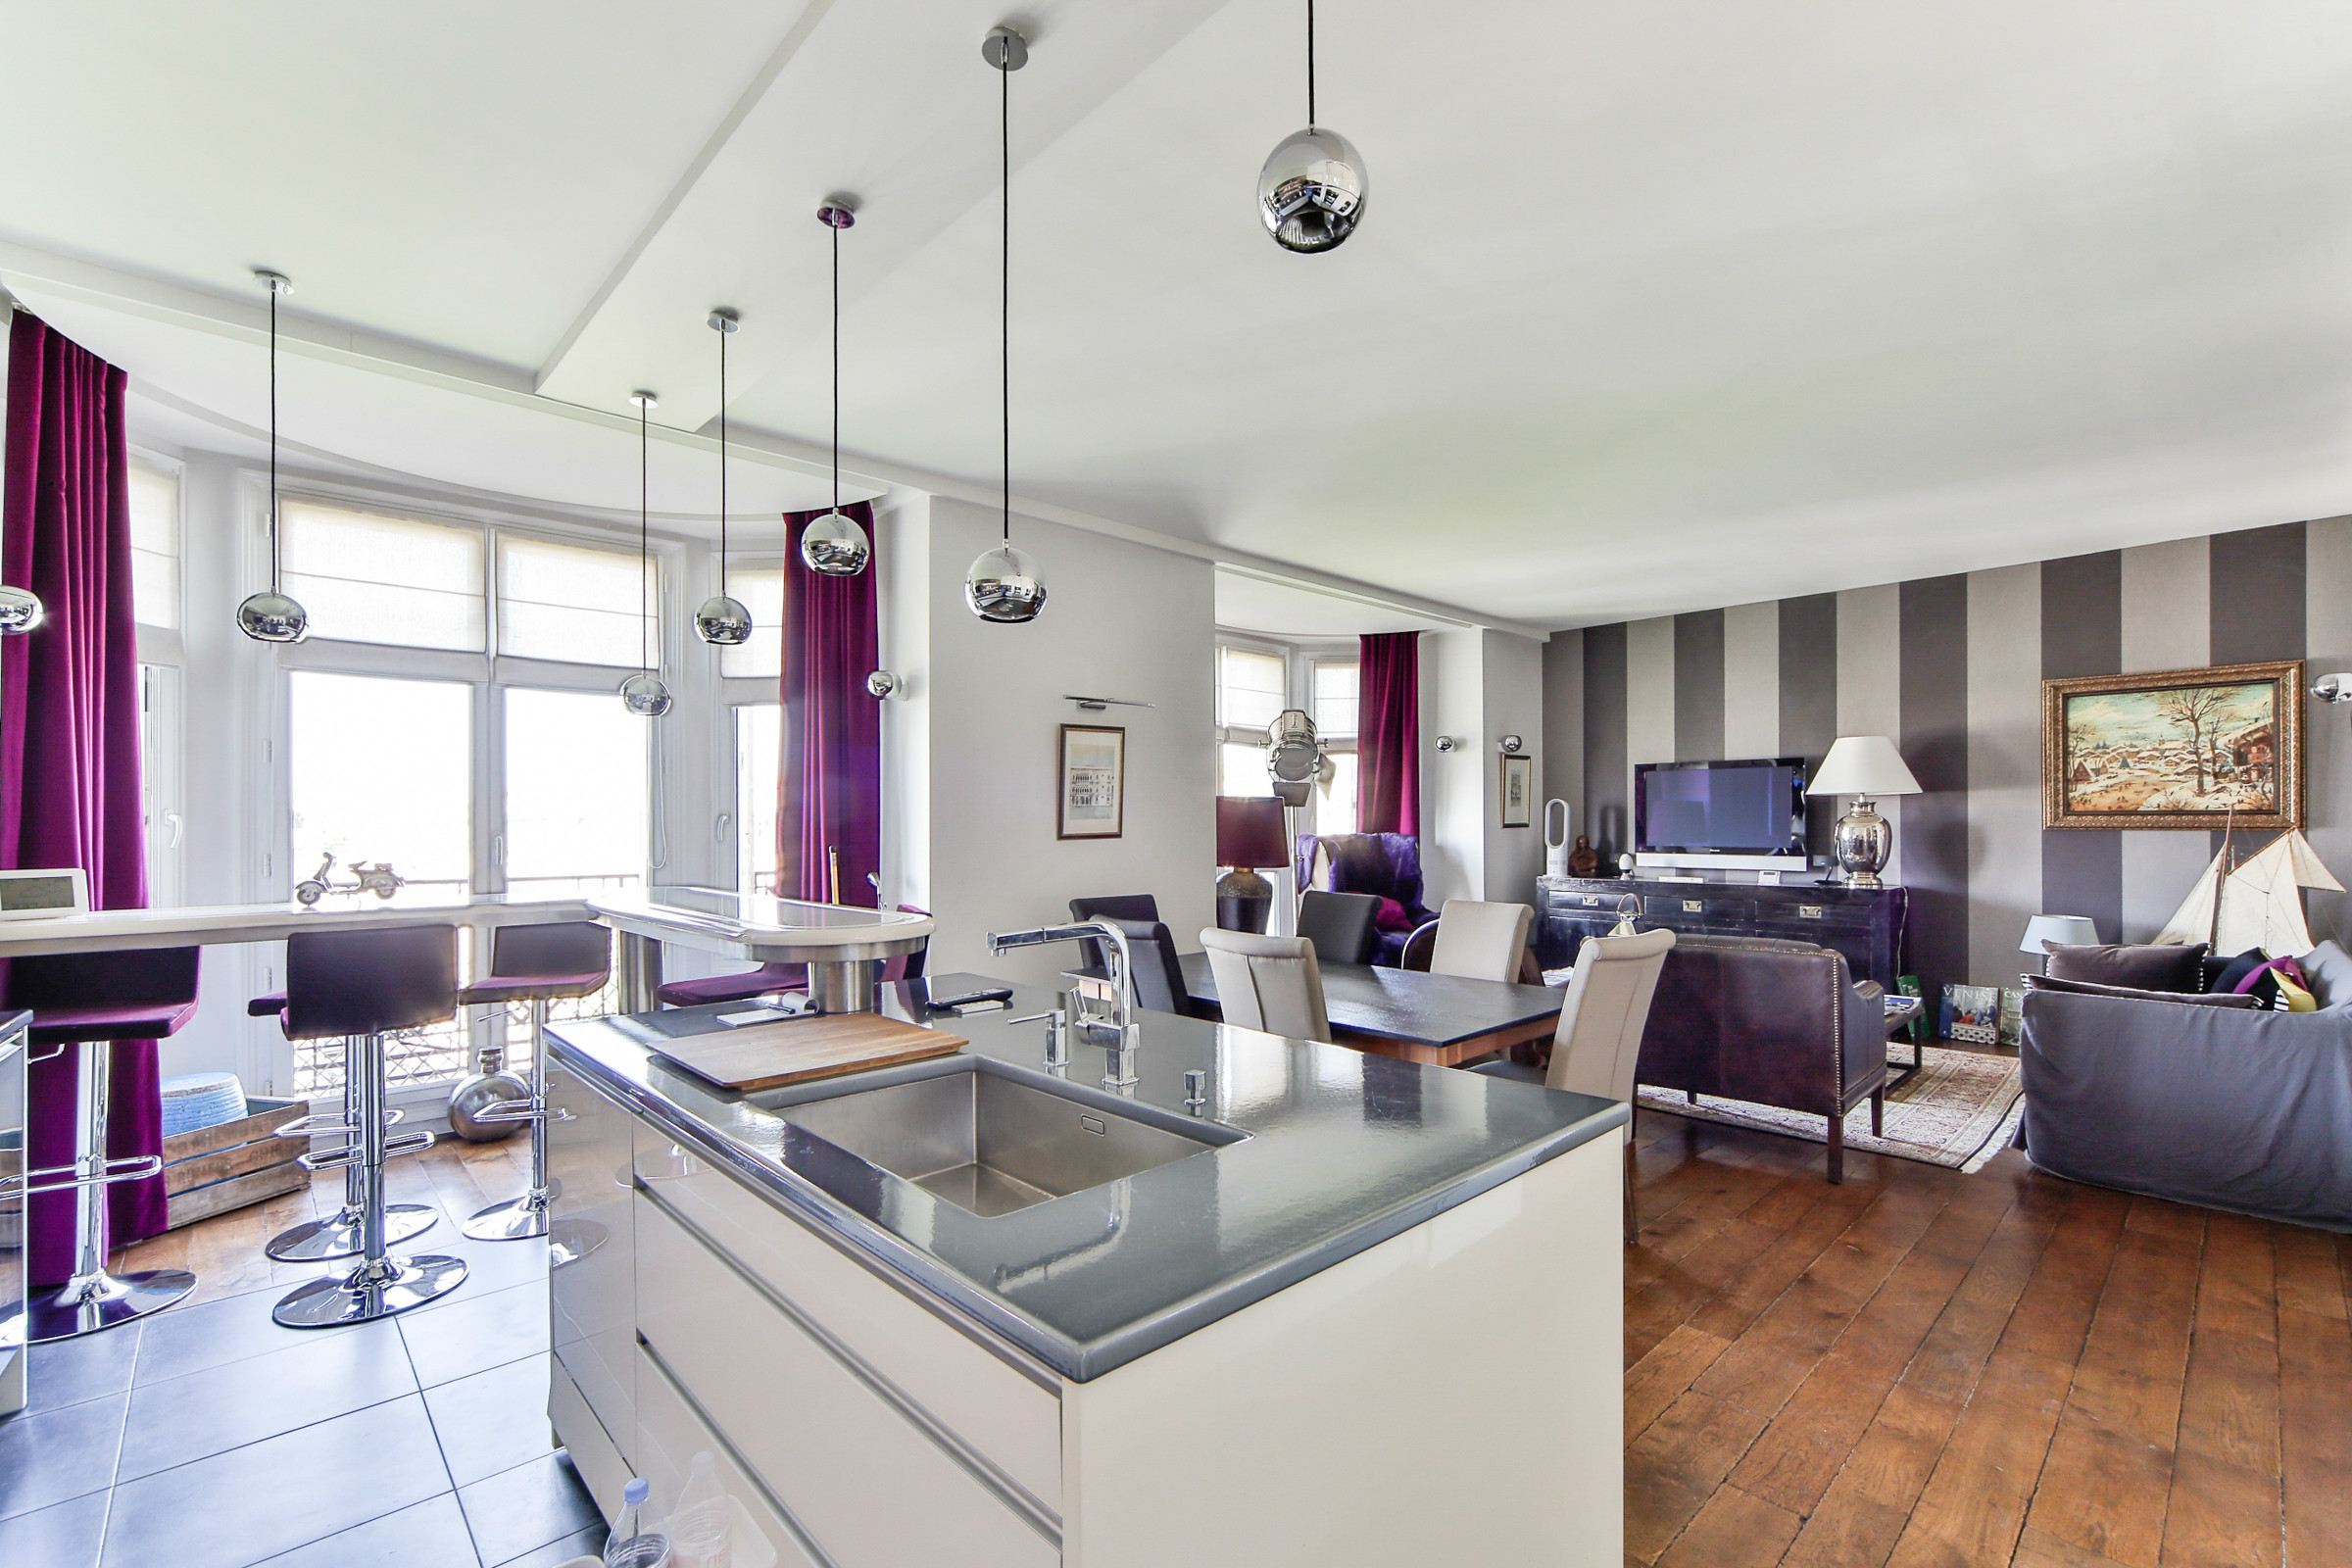 sales property at Neuilly - Sablons. Apartment. Sunny and refurbished.